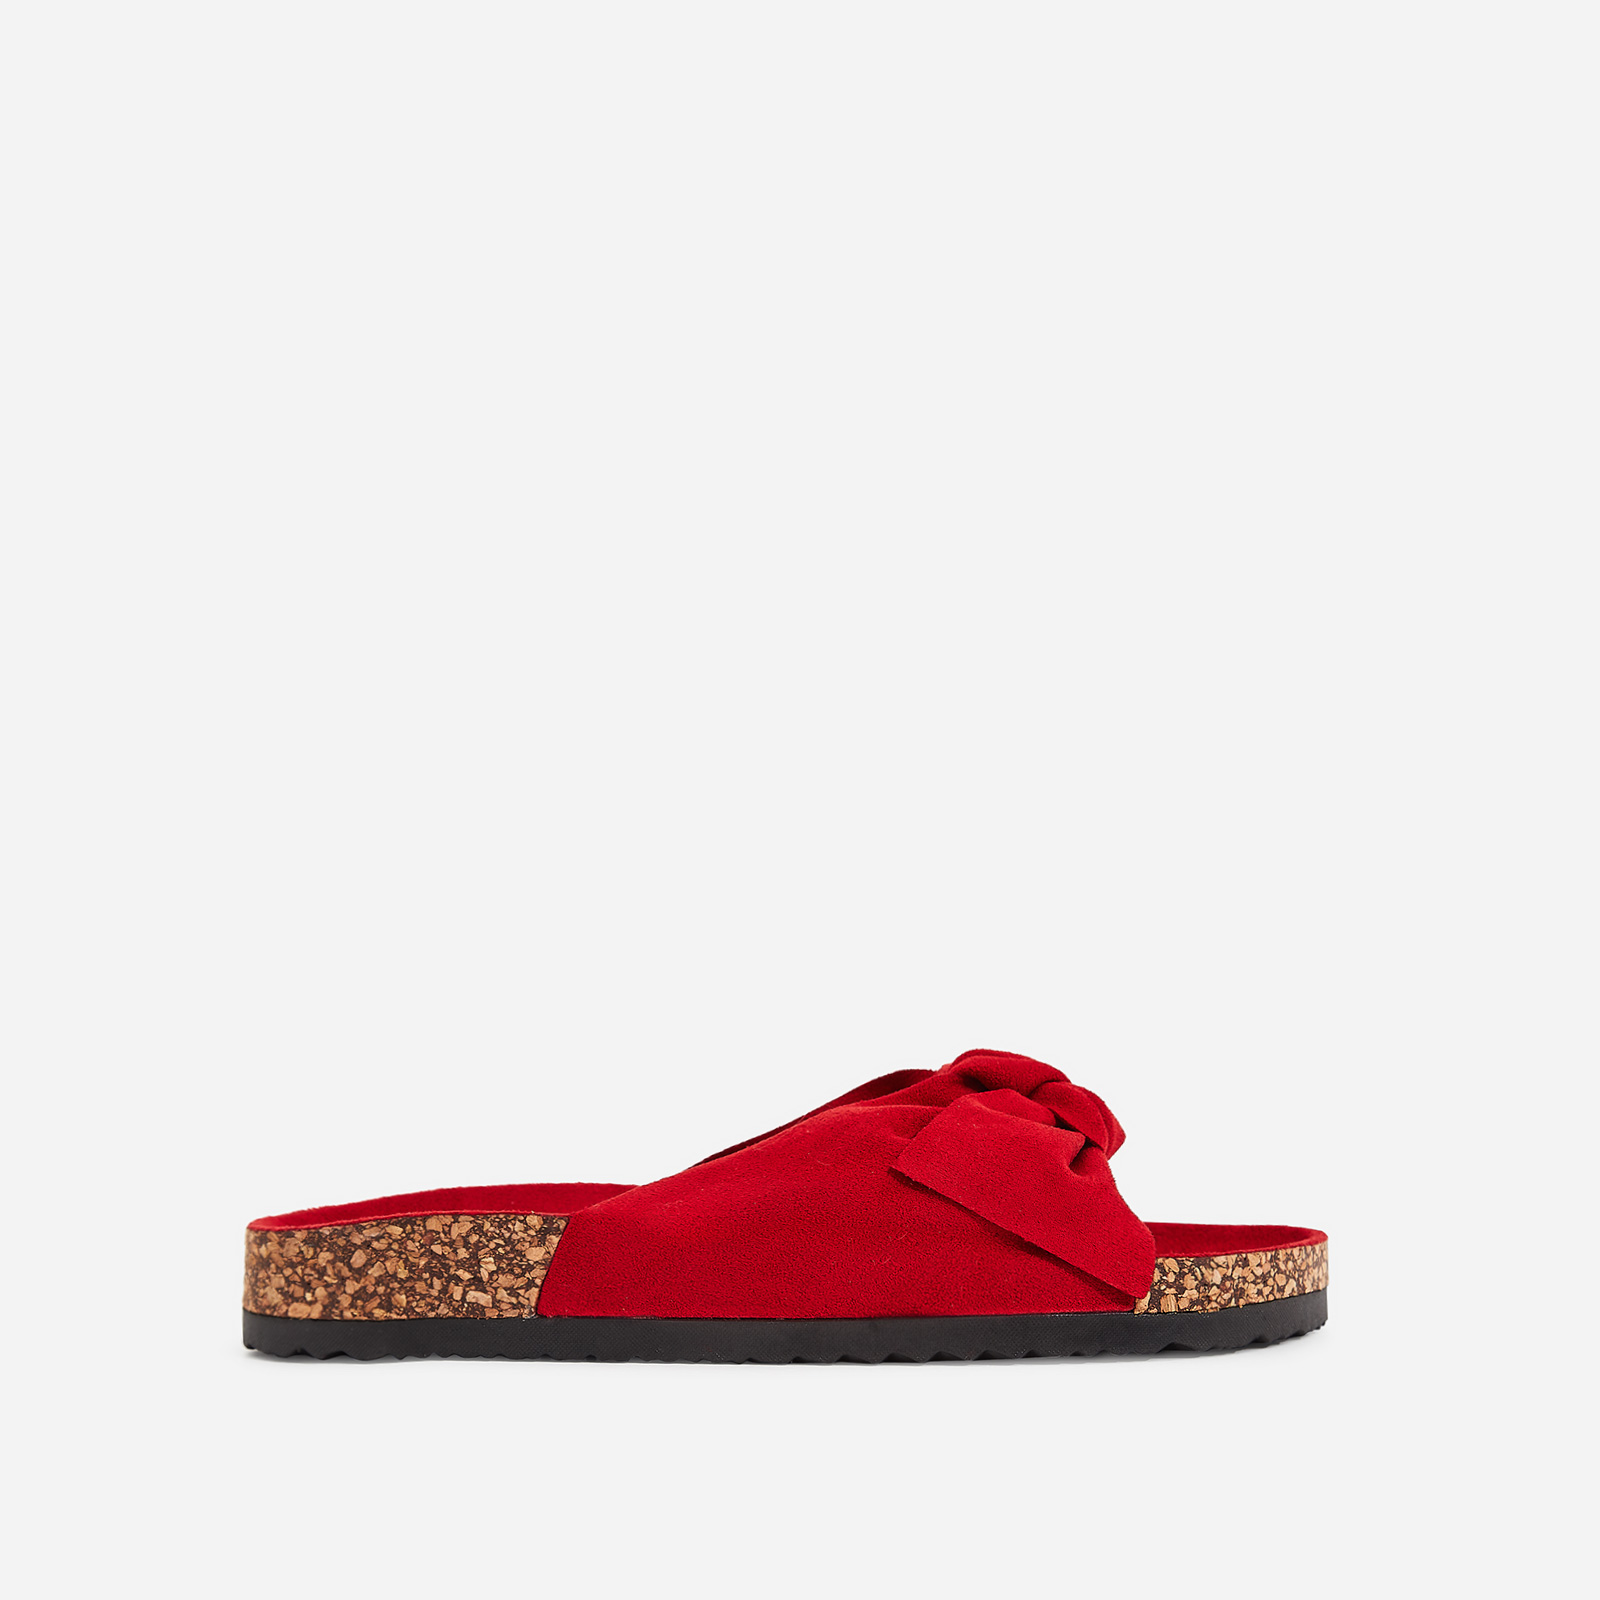 Paula Bow Detail Slider In Lime Red Faux Suede